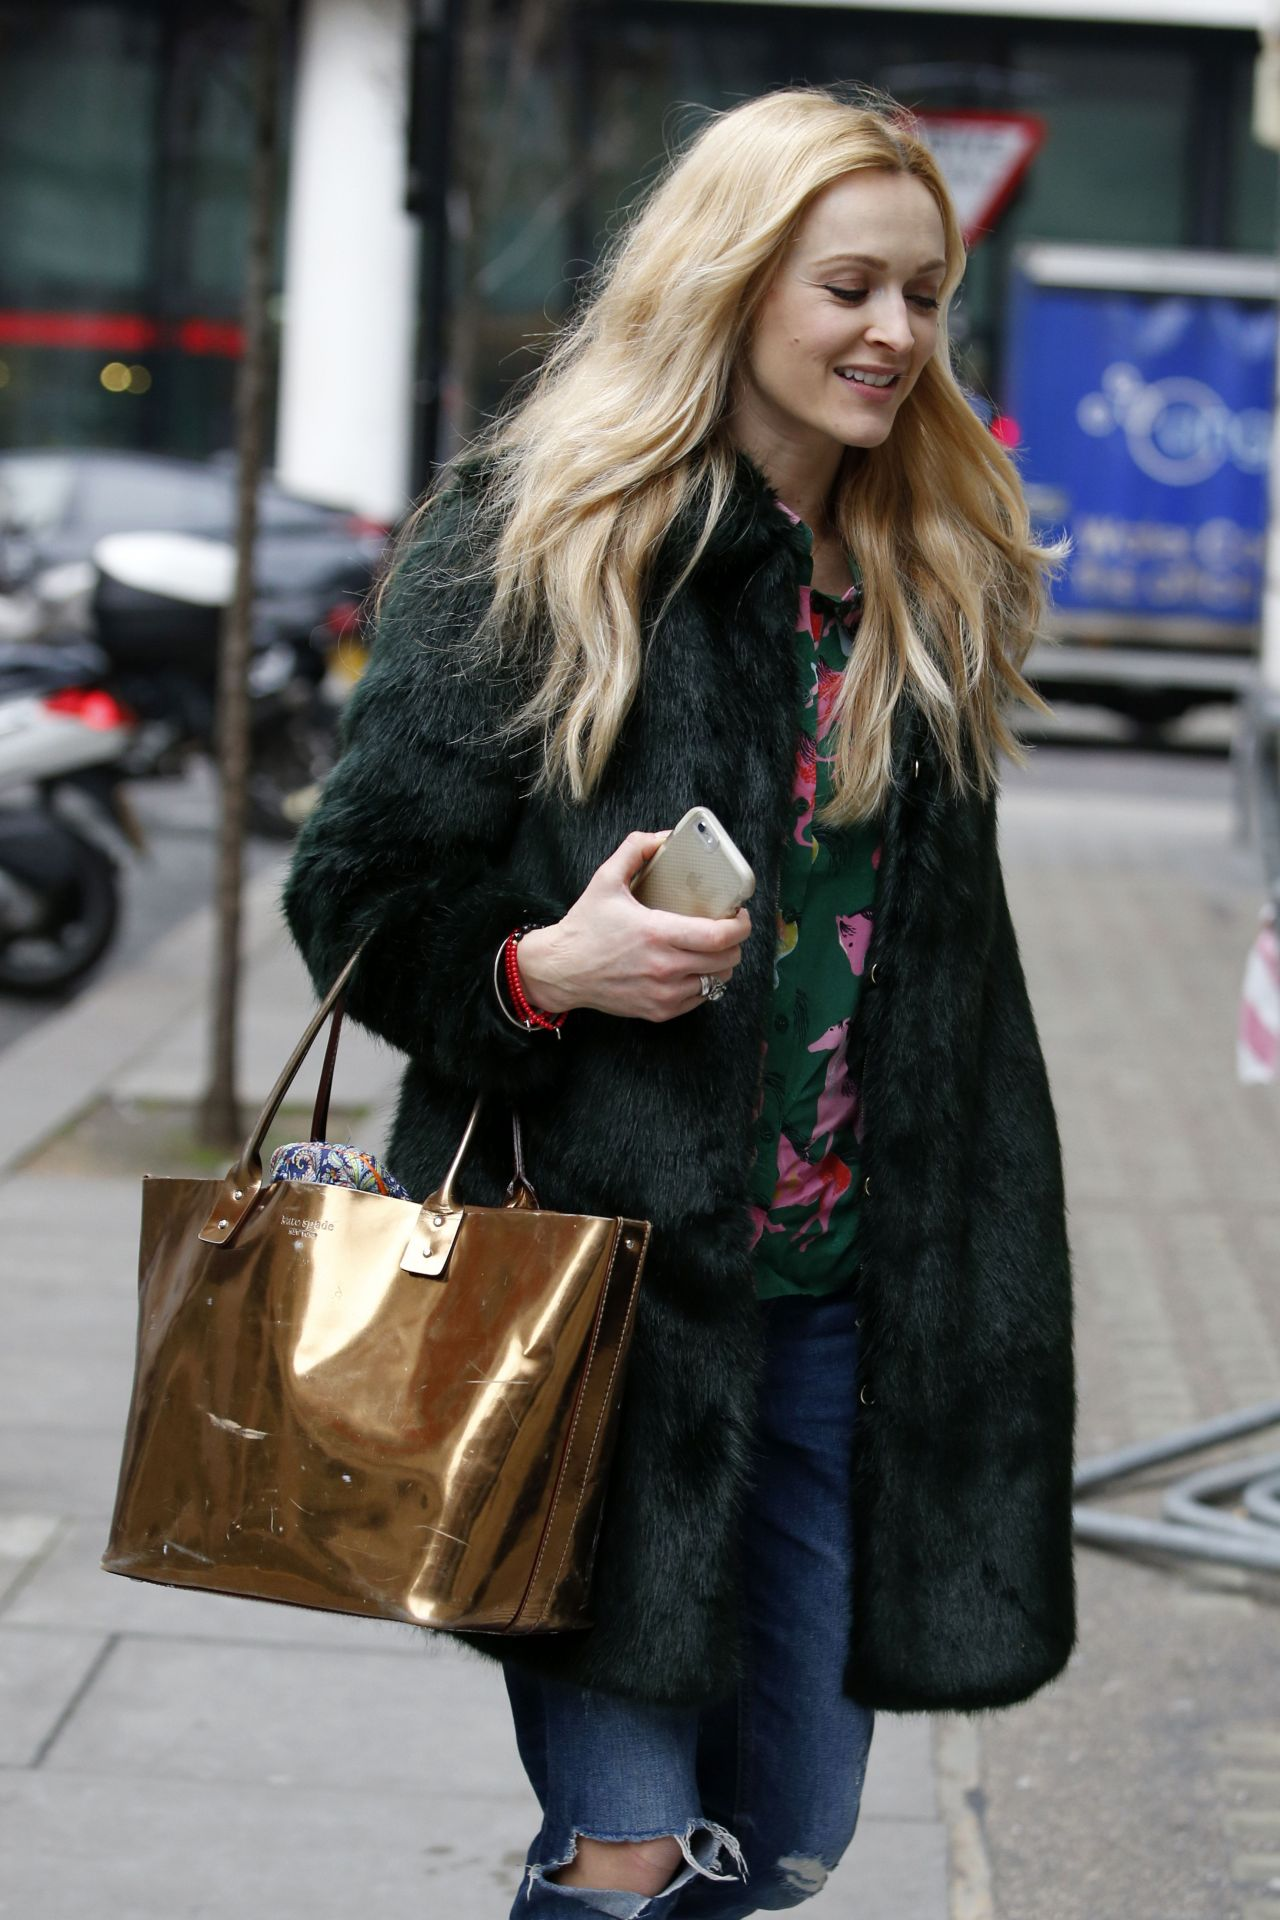 fearne cotton street style out in london uk 2 15 2017. Black Bedroom Furniture Sets. Home Design Ideas